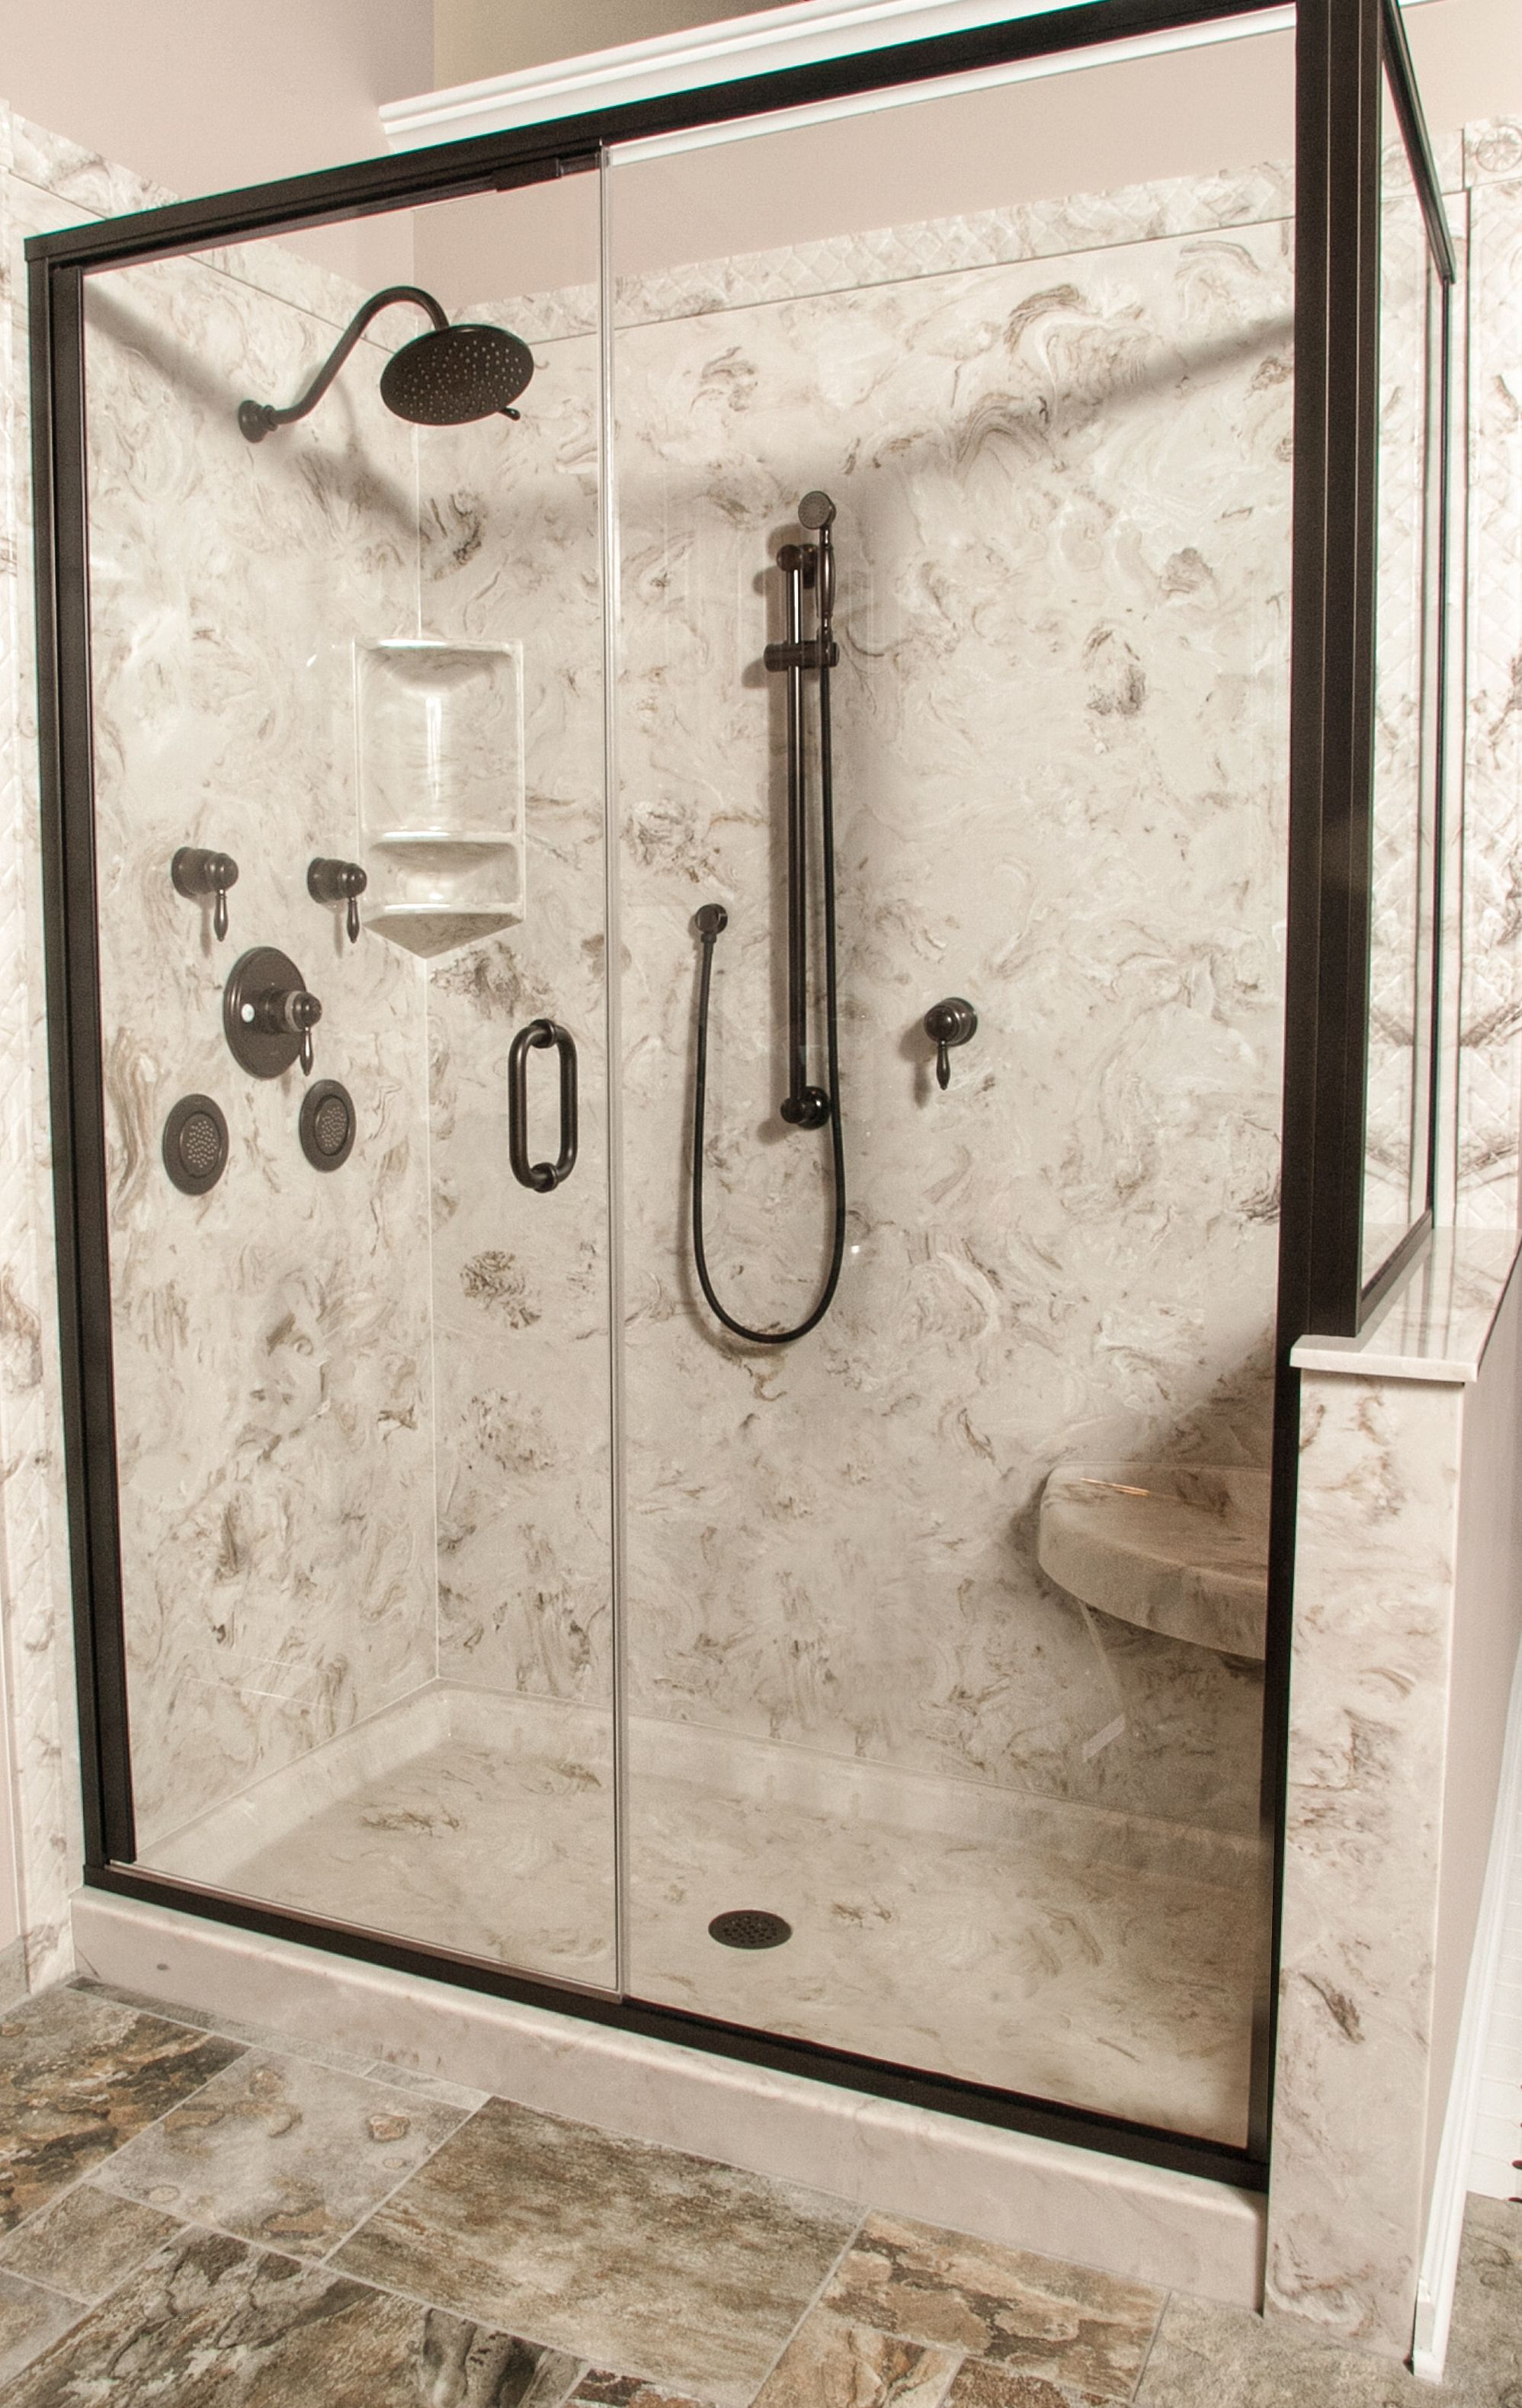 Cultured Marble Shower With Corner Seat Decorative Edge